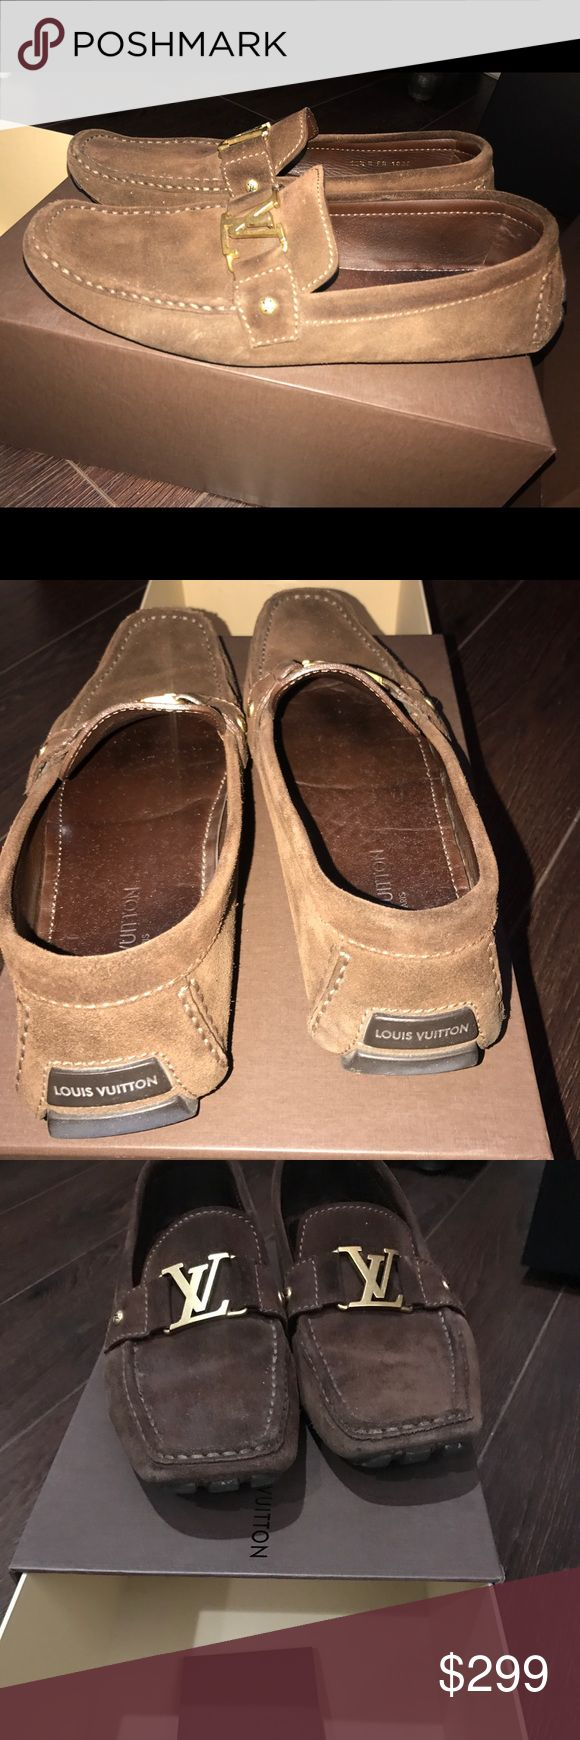 Louis Vuitton suede loafers Brown suede and gold buckle size 10.5 good condition Louis Vuitton Shoes Loafers & Slip-Ons